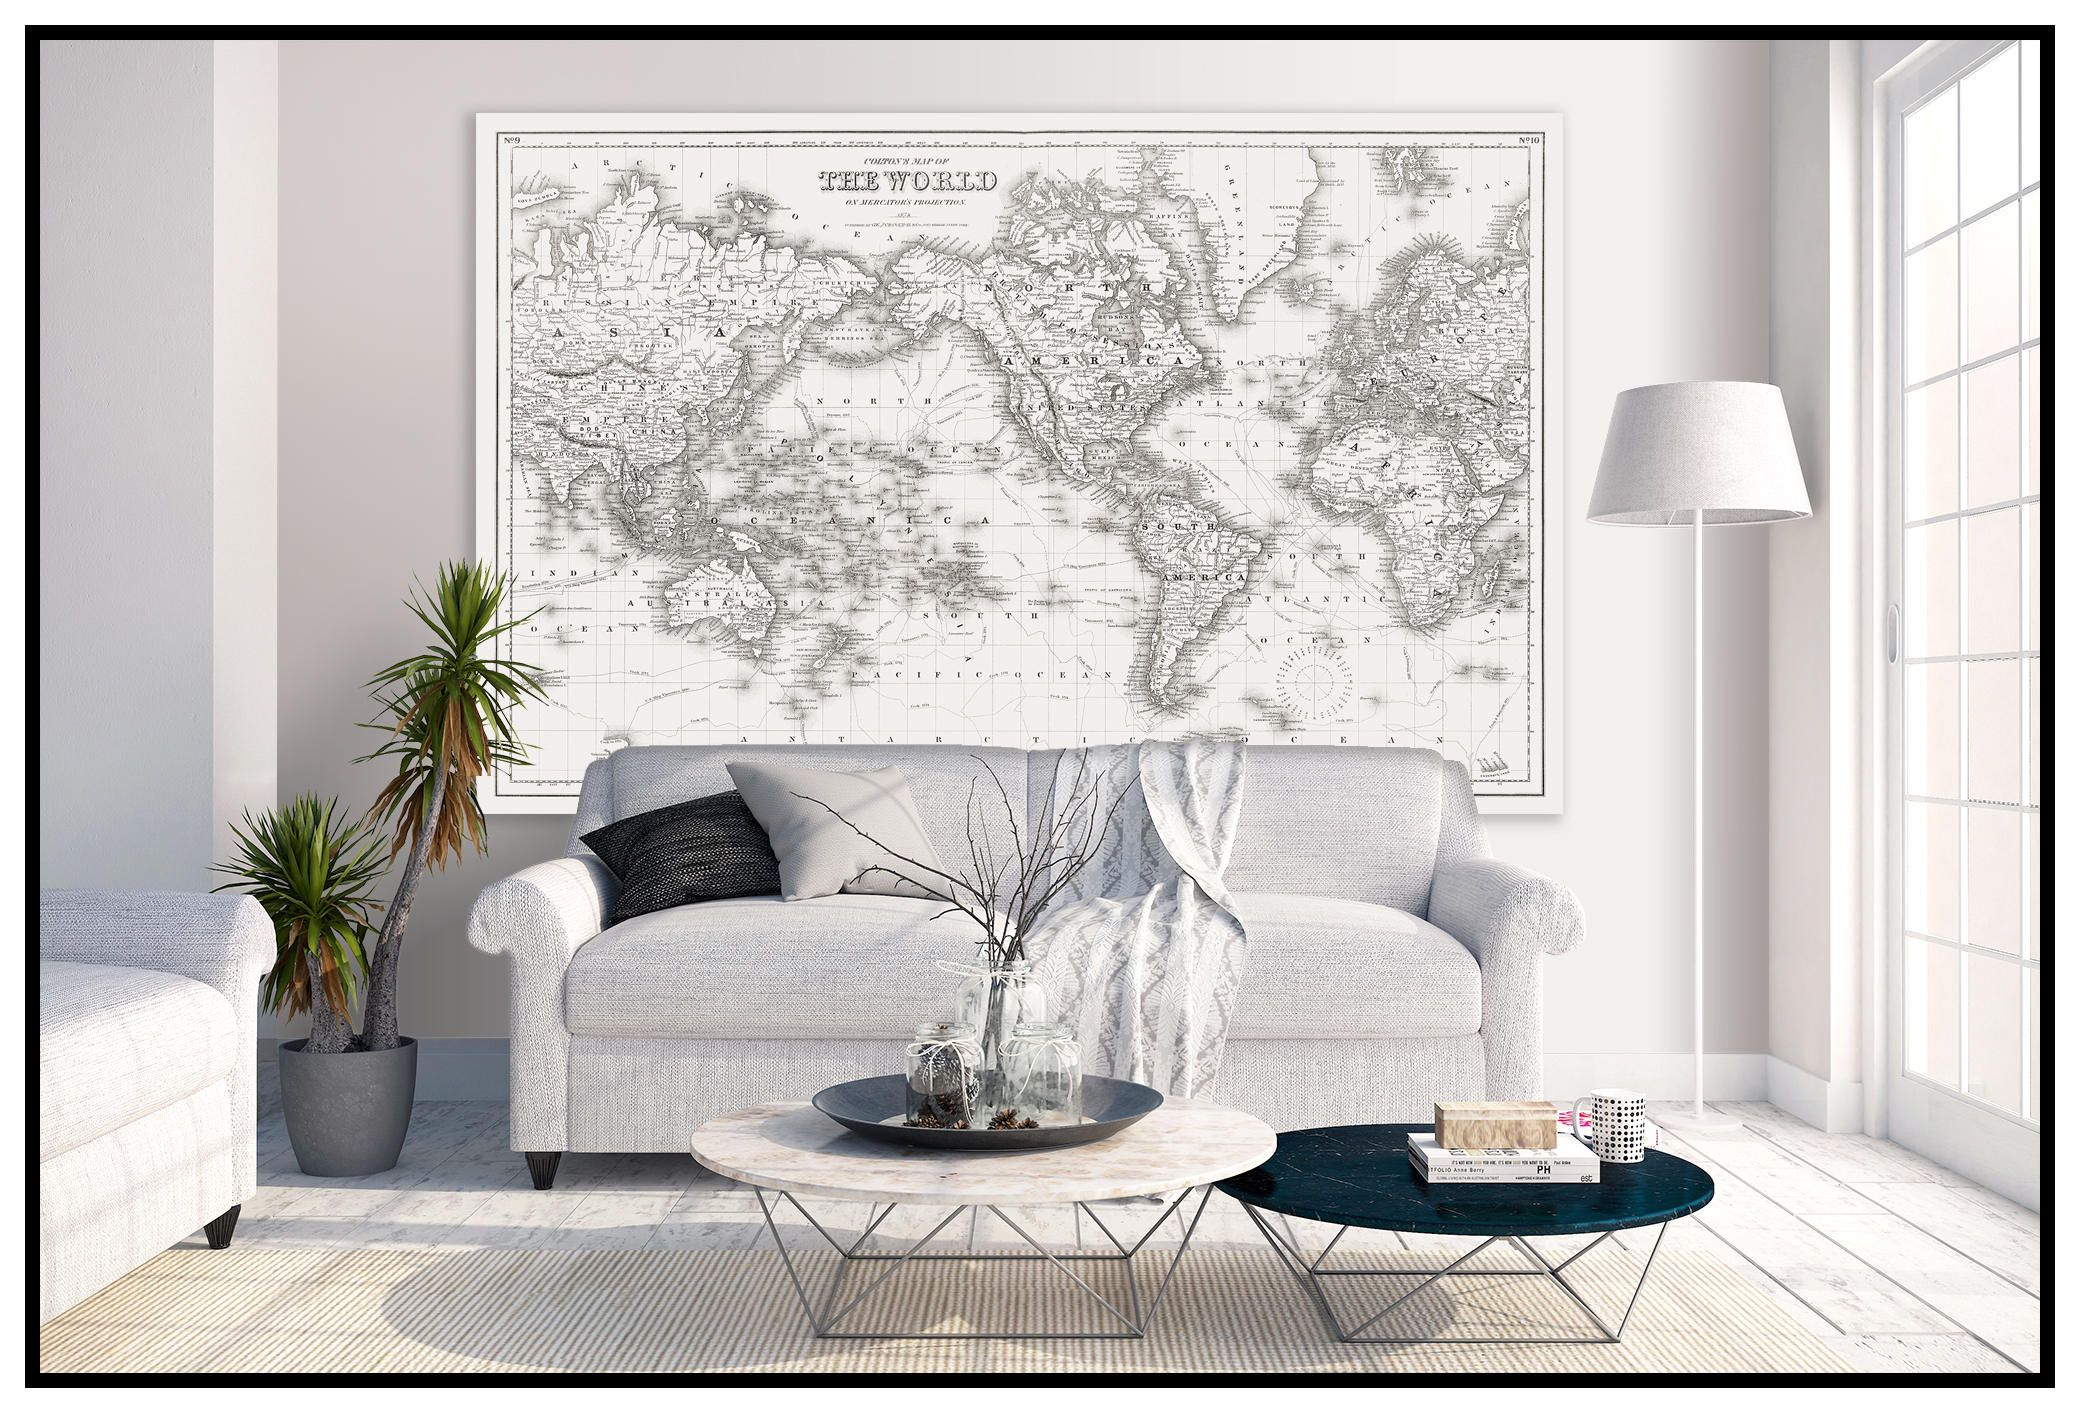 Large vintage world map world map in antique whites world map large vintage world map world map in antique whites world map grand canvas wall tapestry6xft x 10ft map gumiabroncs Images